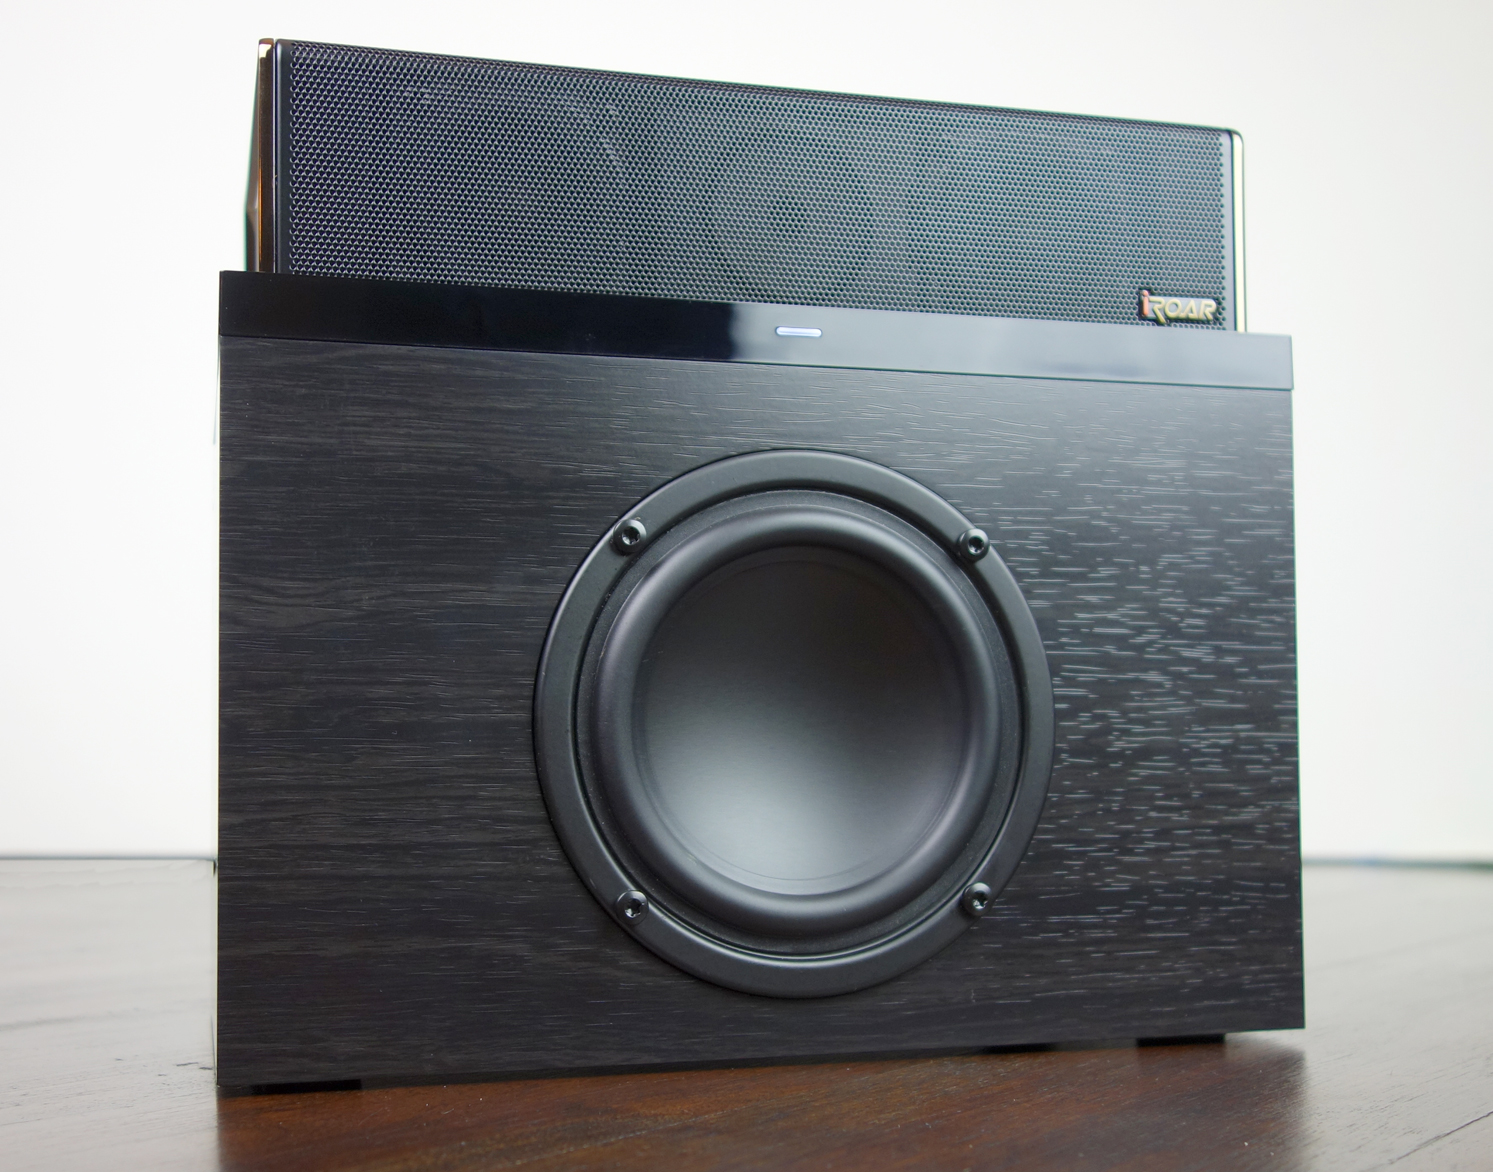 Creative iRoar Rock Docking Subwoofer with iRoar